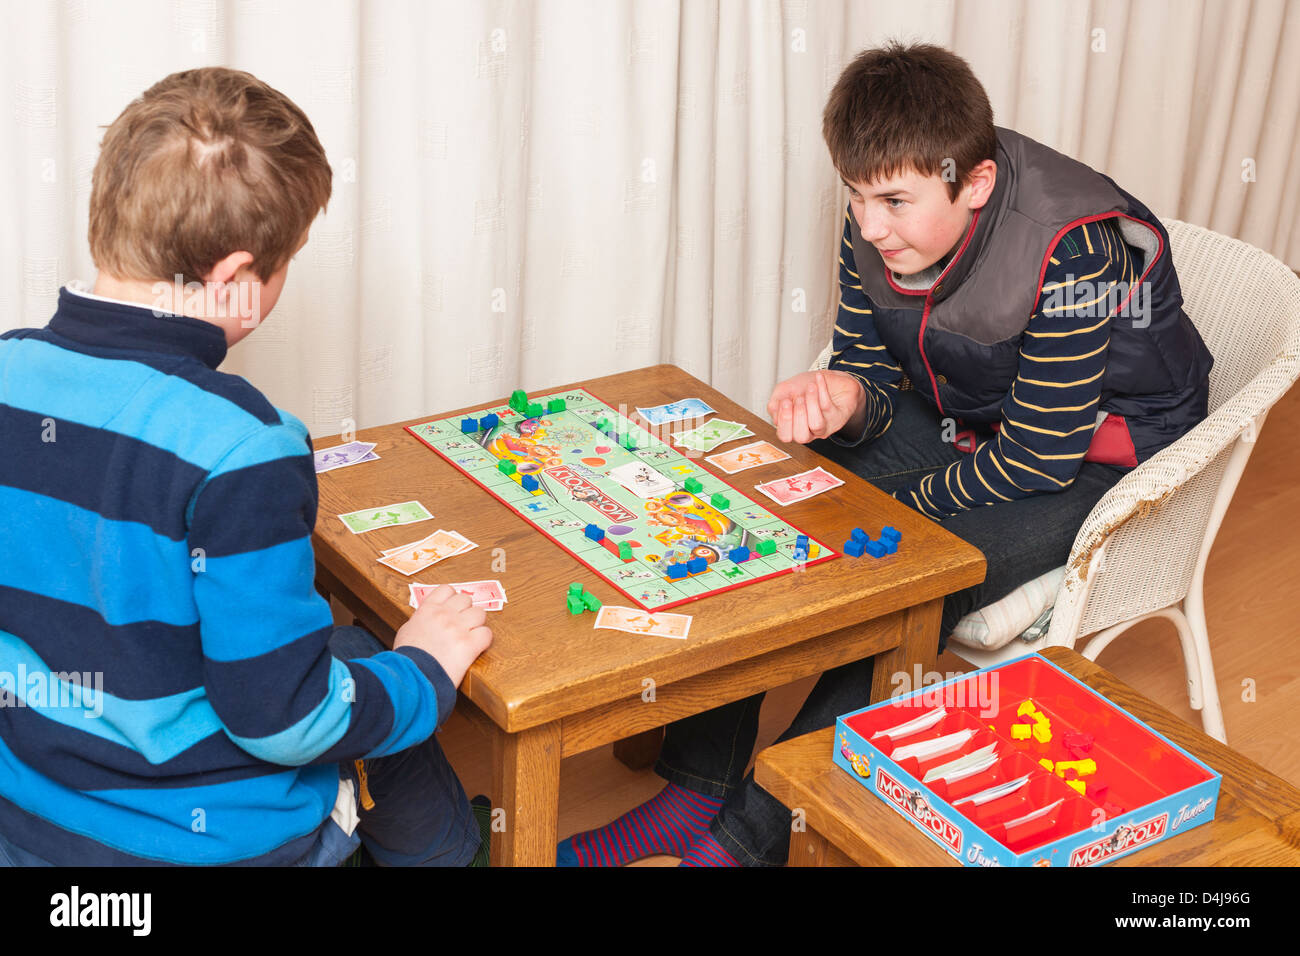 Kids Playing Monopoly In